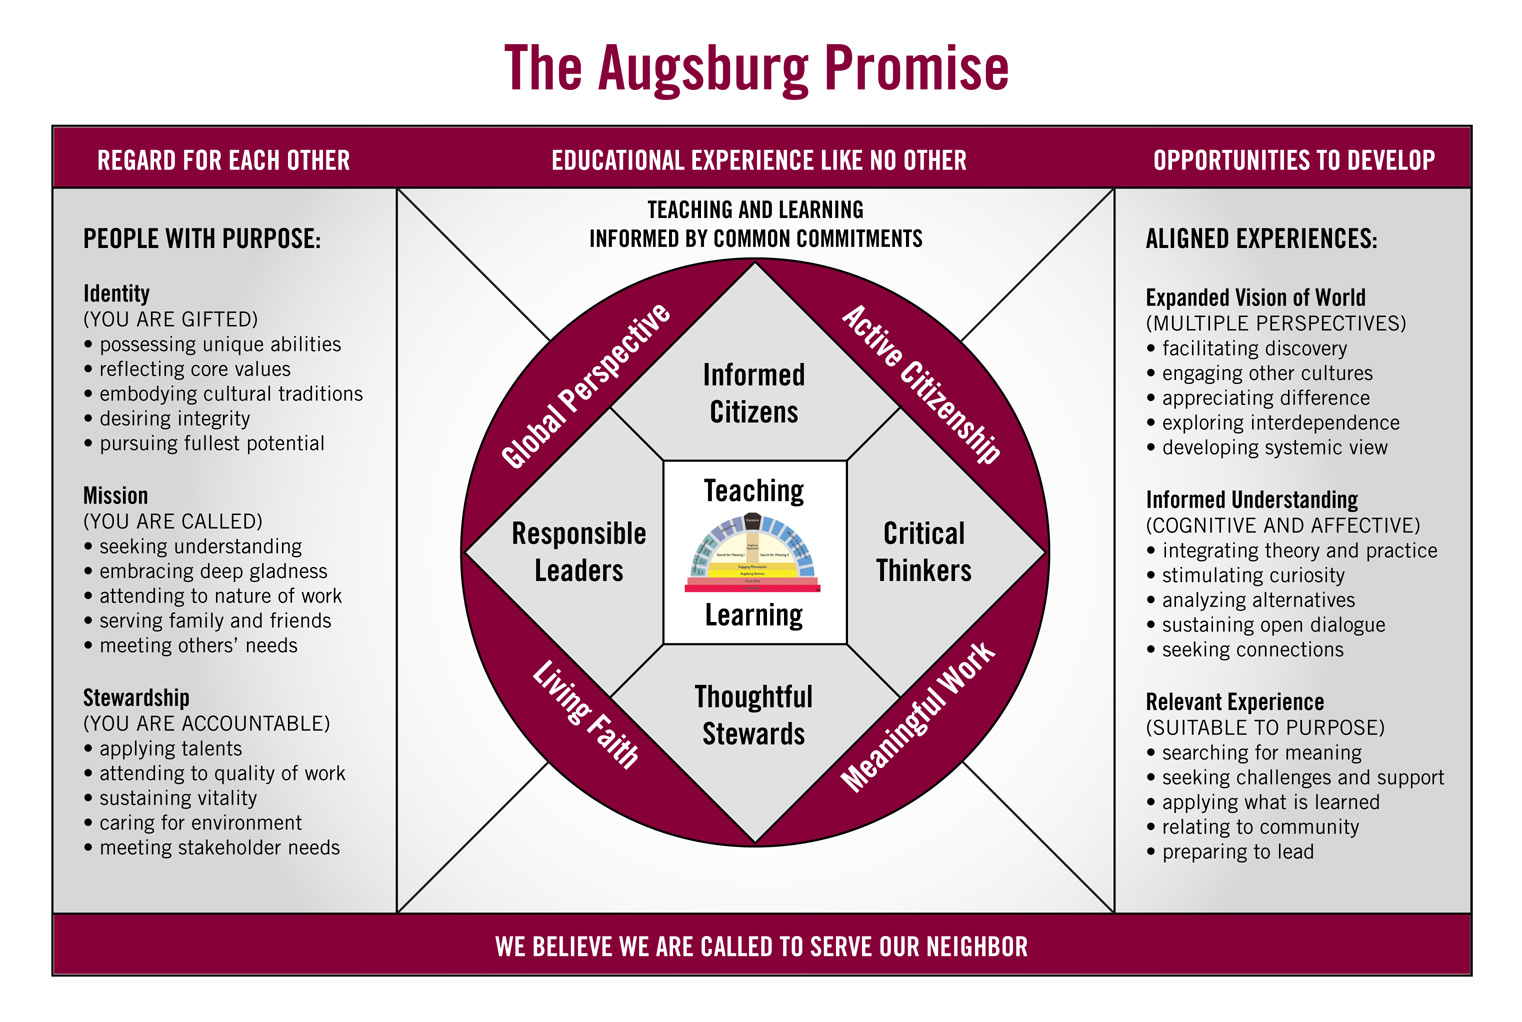 The Augsburg Promise